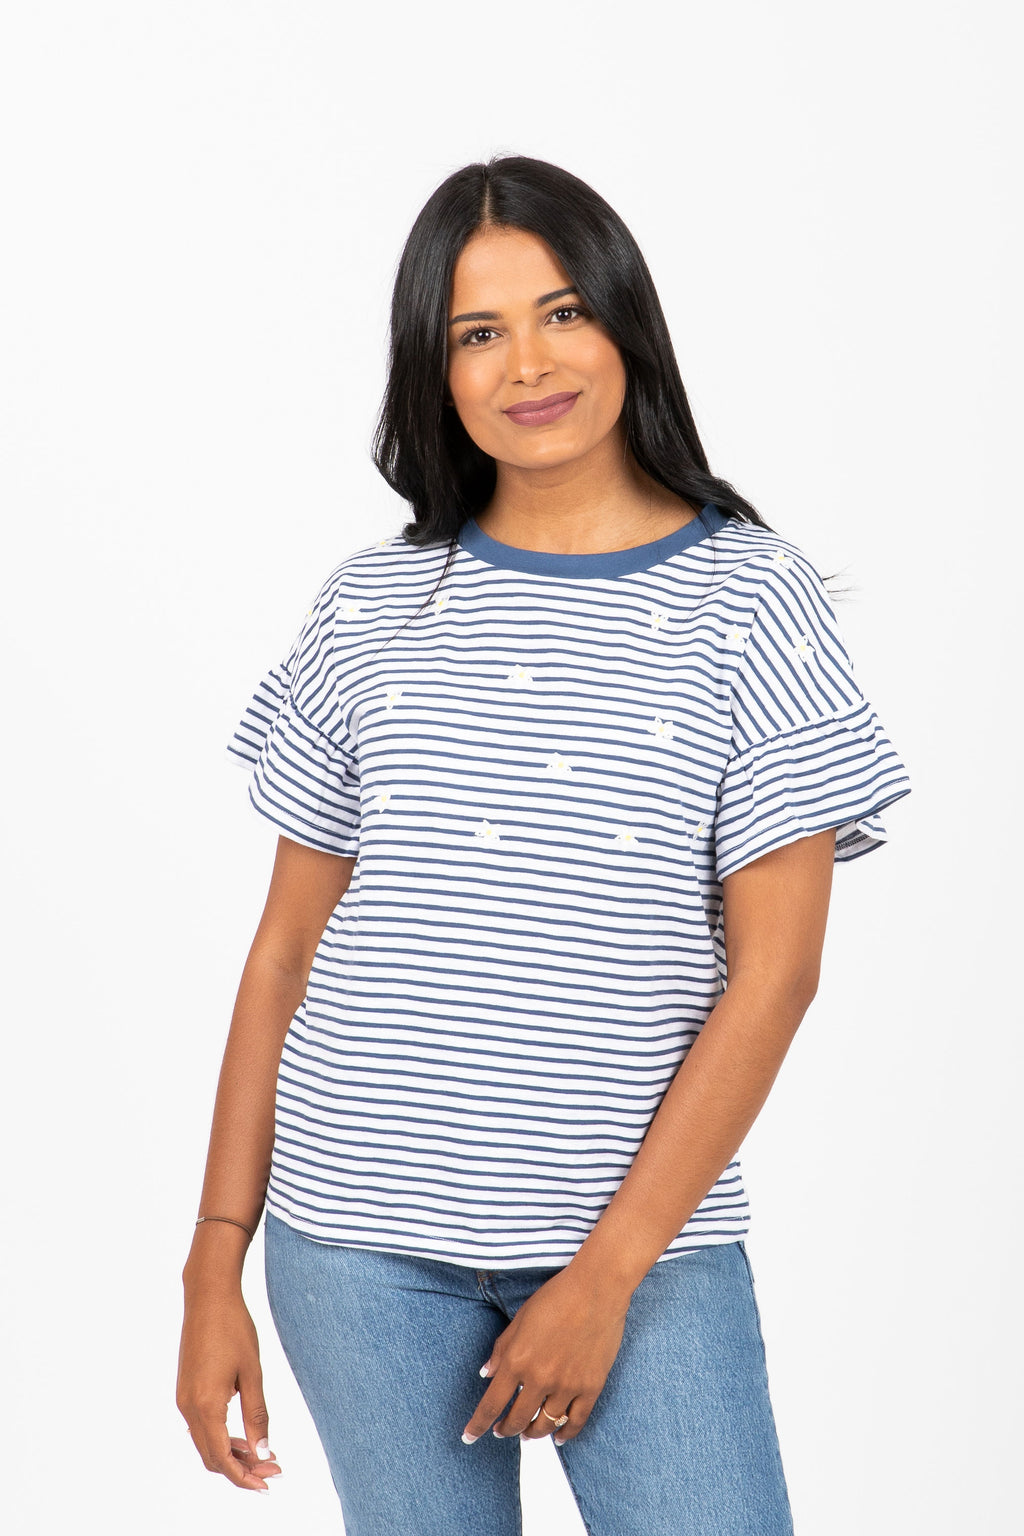 The Furox Daisy Striped Blouse in Blue